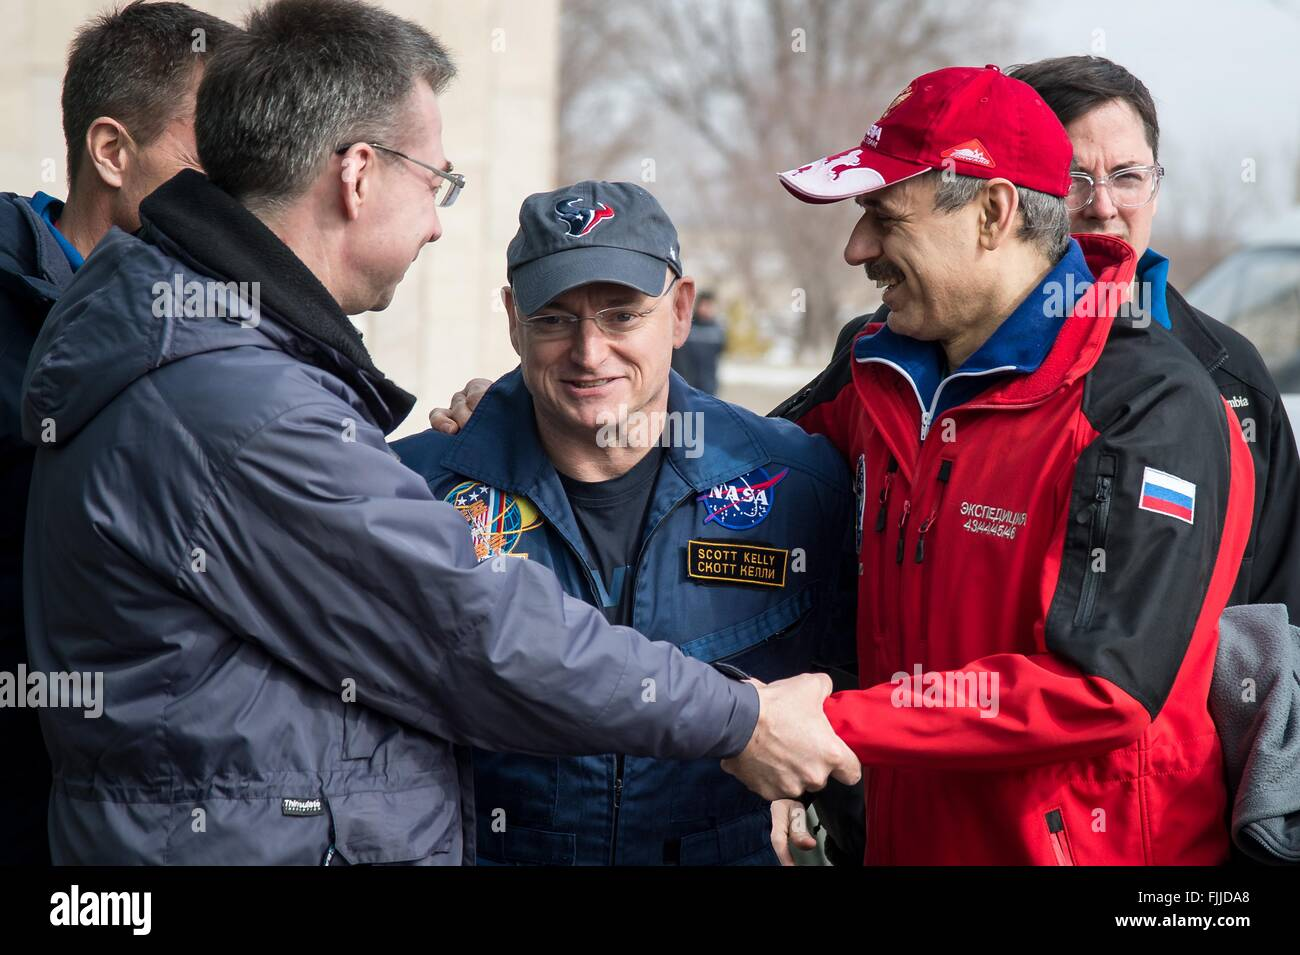 American astronaut Scott Kelly, center, is embraced by crew member Russian cosmonaut Mikhail Kornienko on arrival - Stock Image